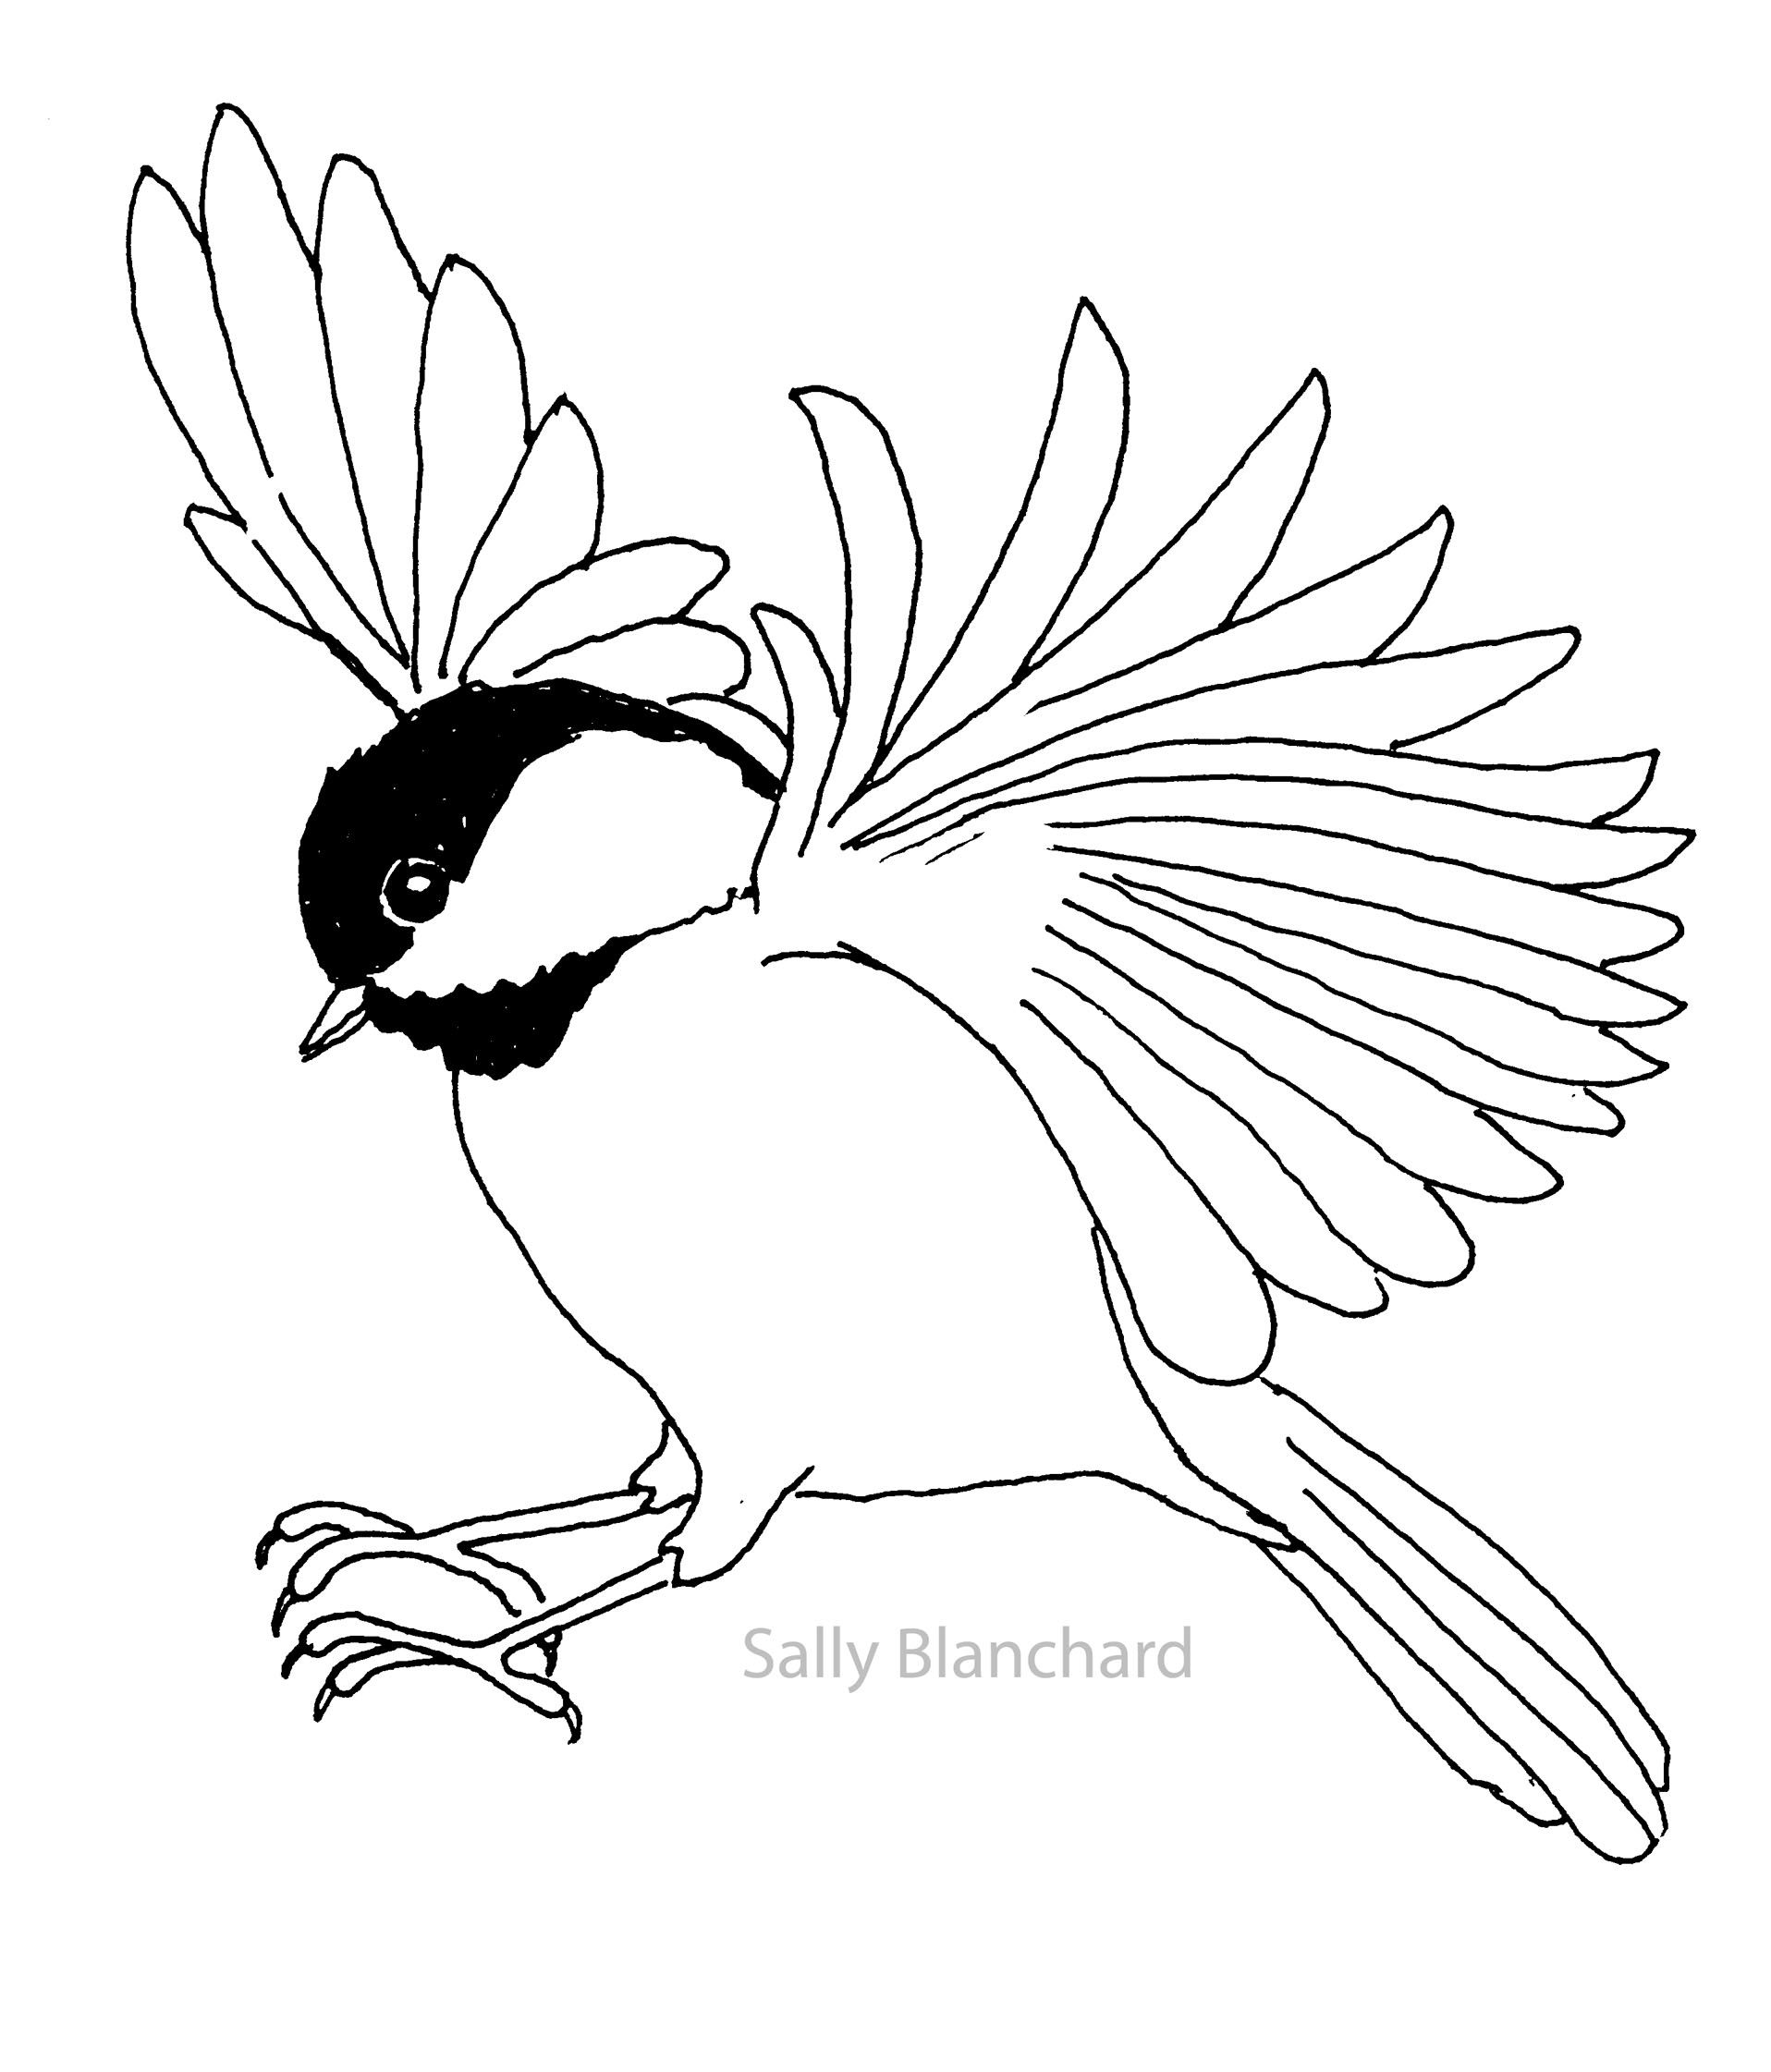 Black and white chickadee clipart vector free library Sally Blanchard - Pen Line Drawing Landing Black-capped Chickadee ... vector free library